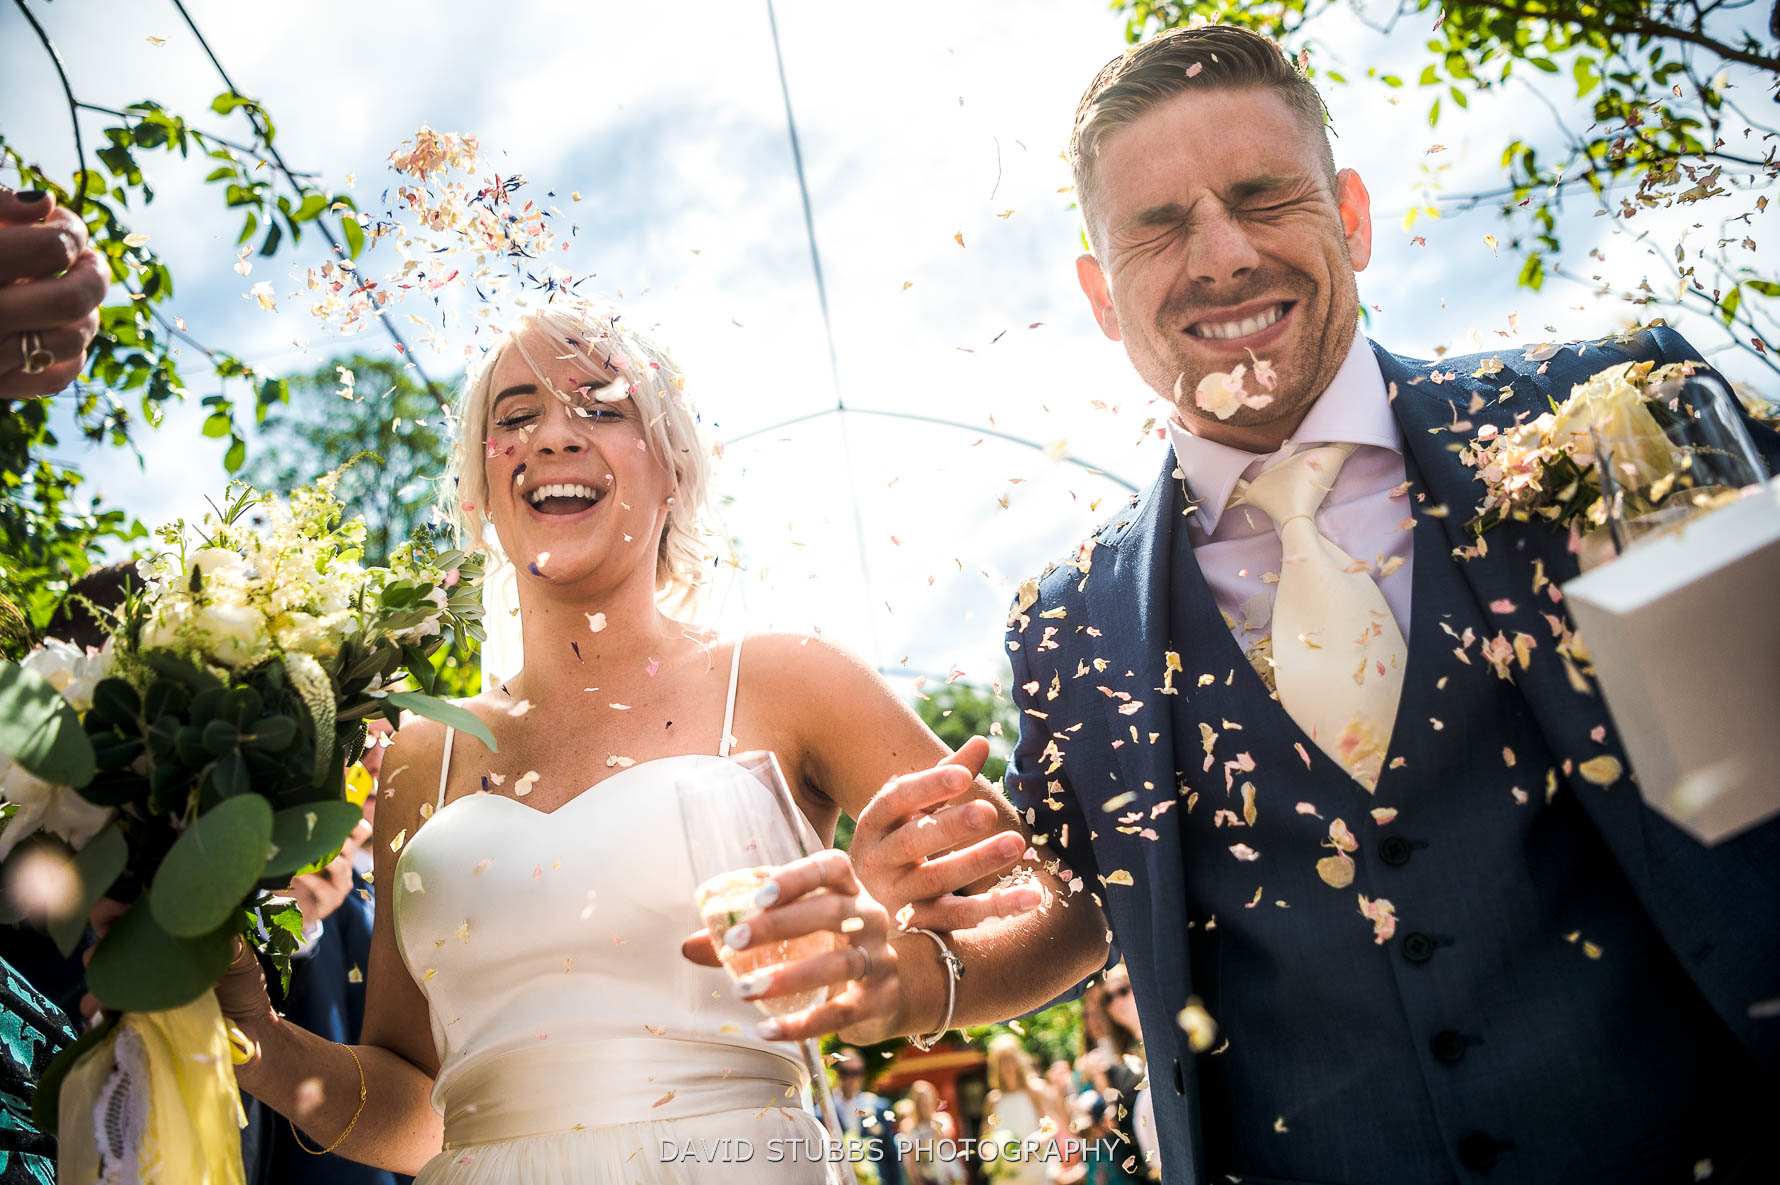 confetti in the face for a Stamford wedding